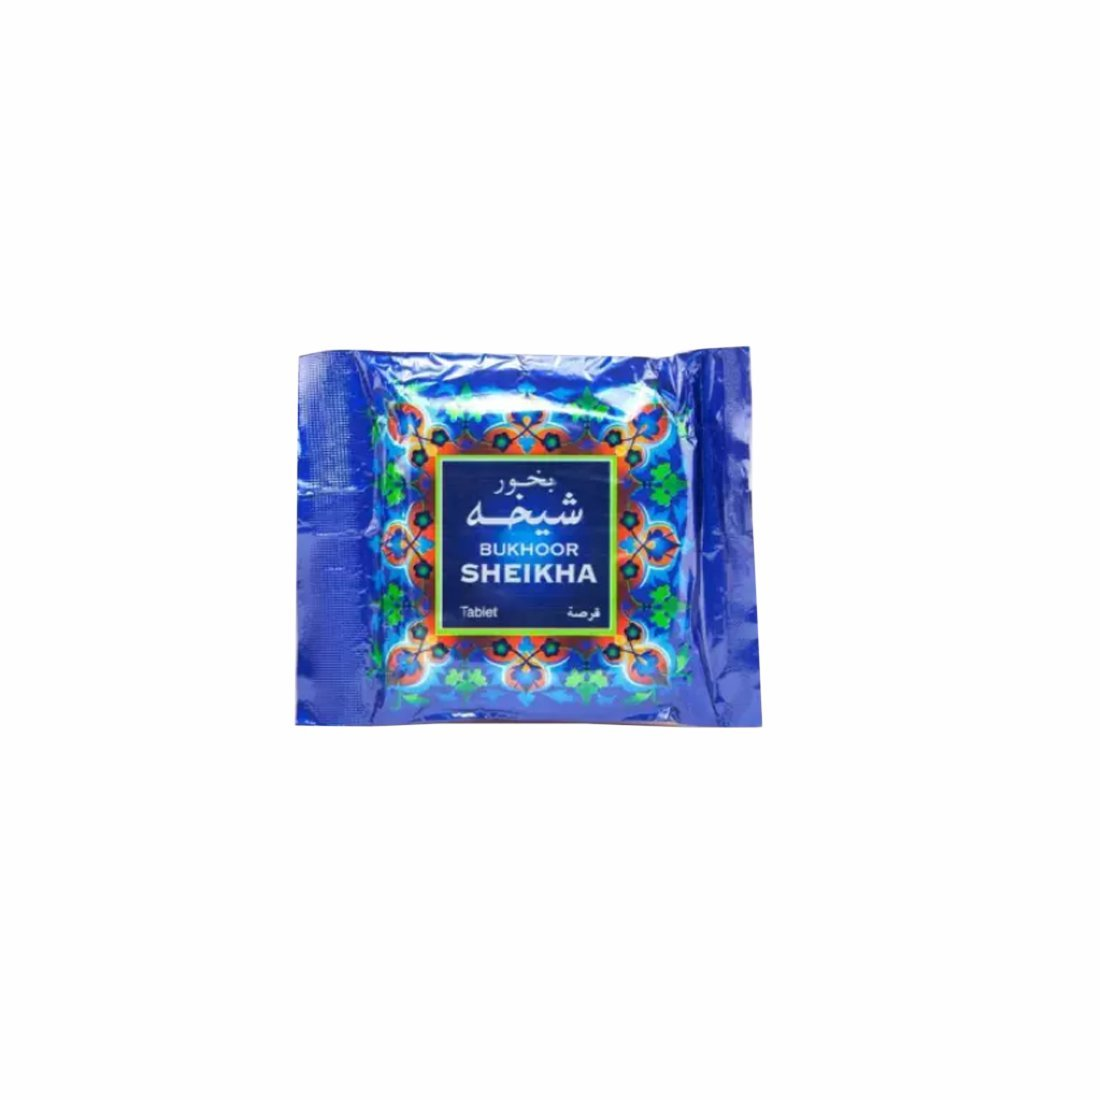 Al Haramain Bukhoor Sheikha Bakhoor Burners Fragrance Paste